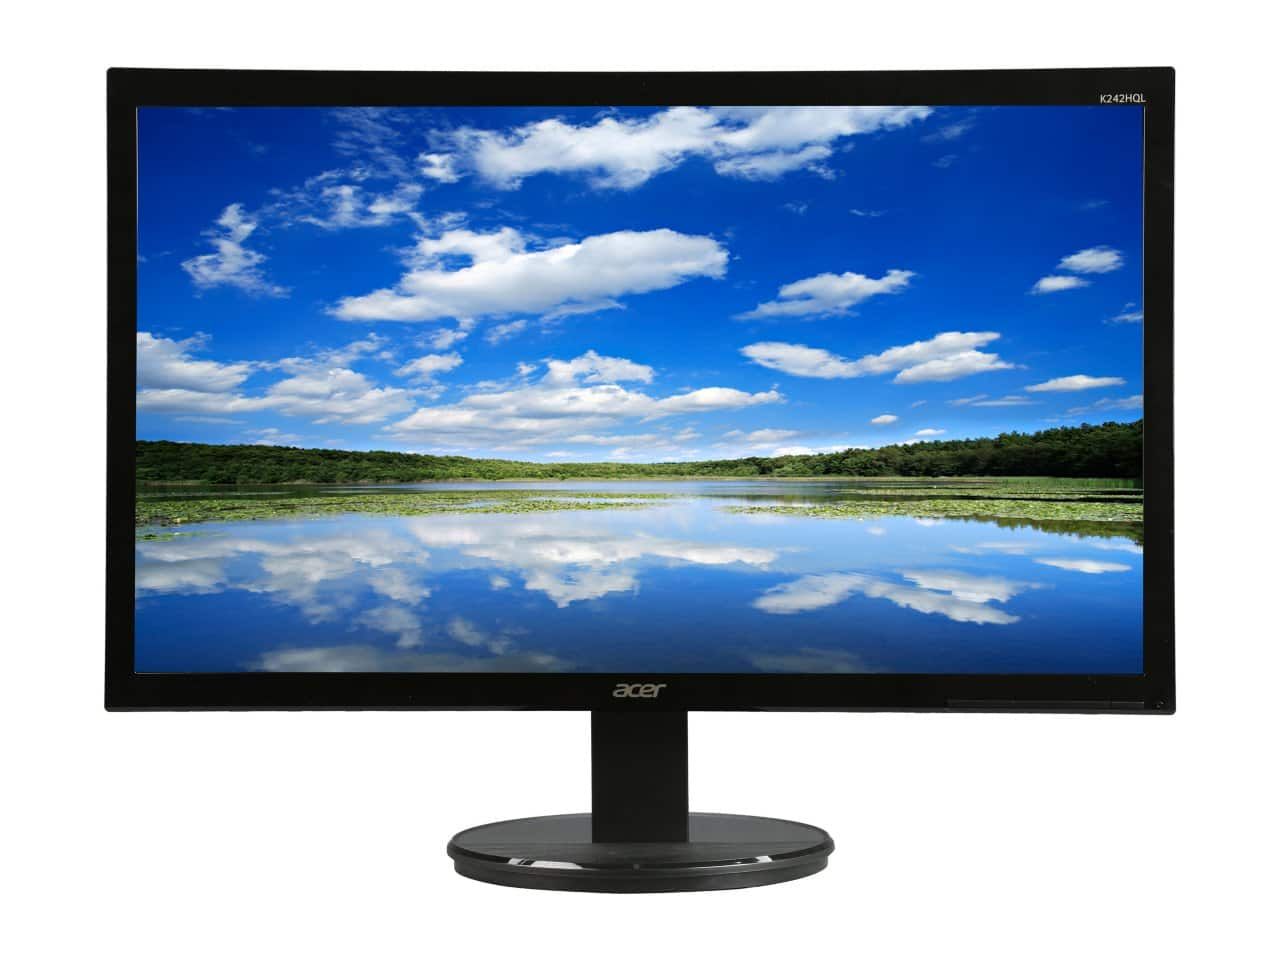 "23"" Asus VC239H 1920x1080 5ms IPS Panel HDMI LED Monitor for $109.99 AR, 34"" LG 34UM94-P Ultrawide 3440x1440 5ms IPS HDMI LED Monitor for $589.99 AC + S&H & More @ Newegg.com"